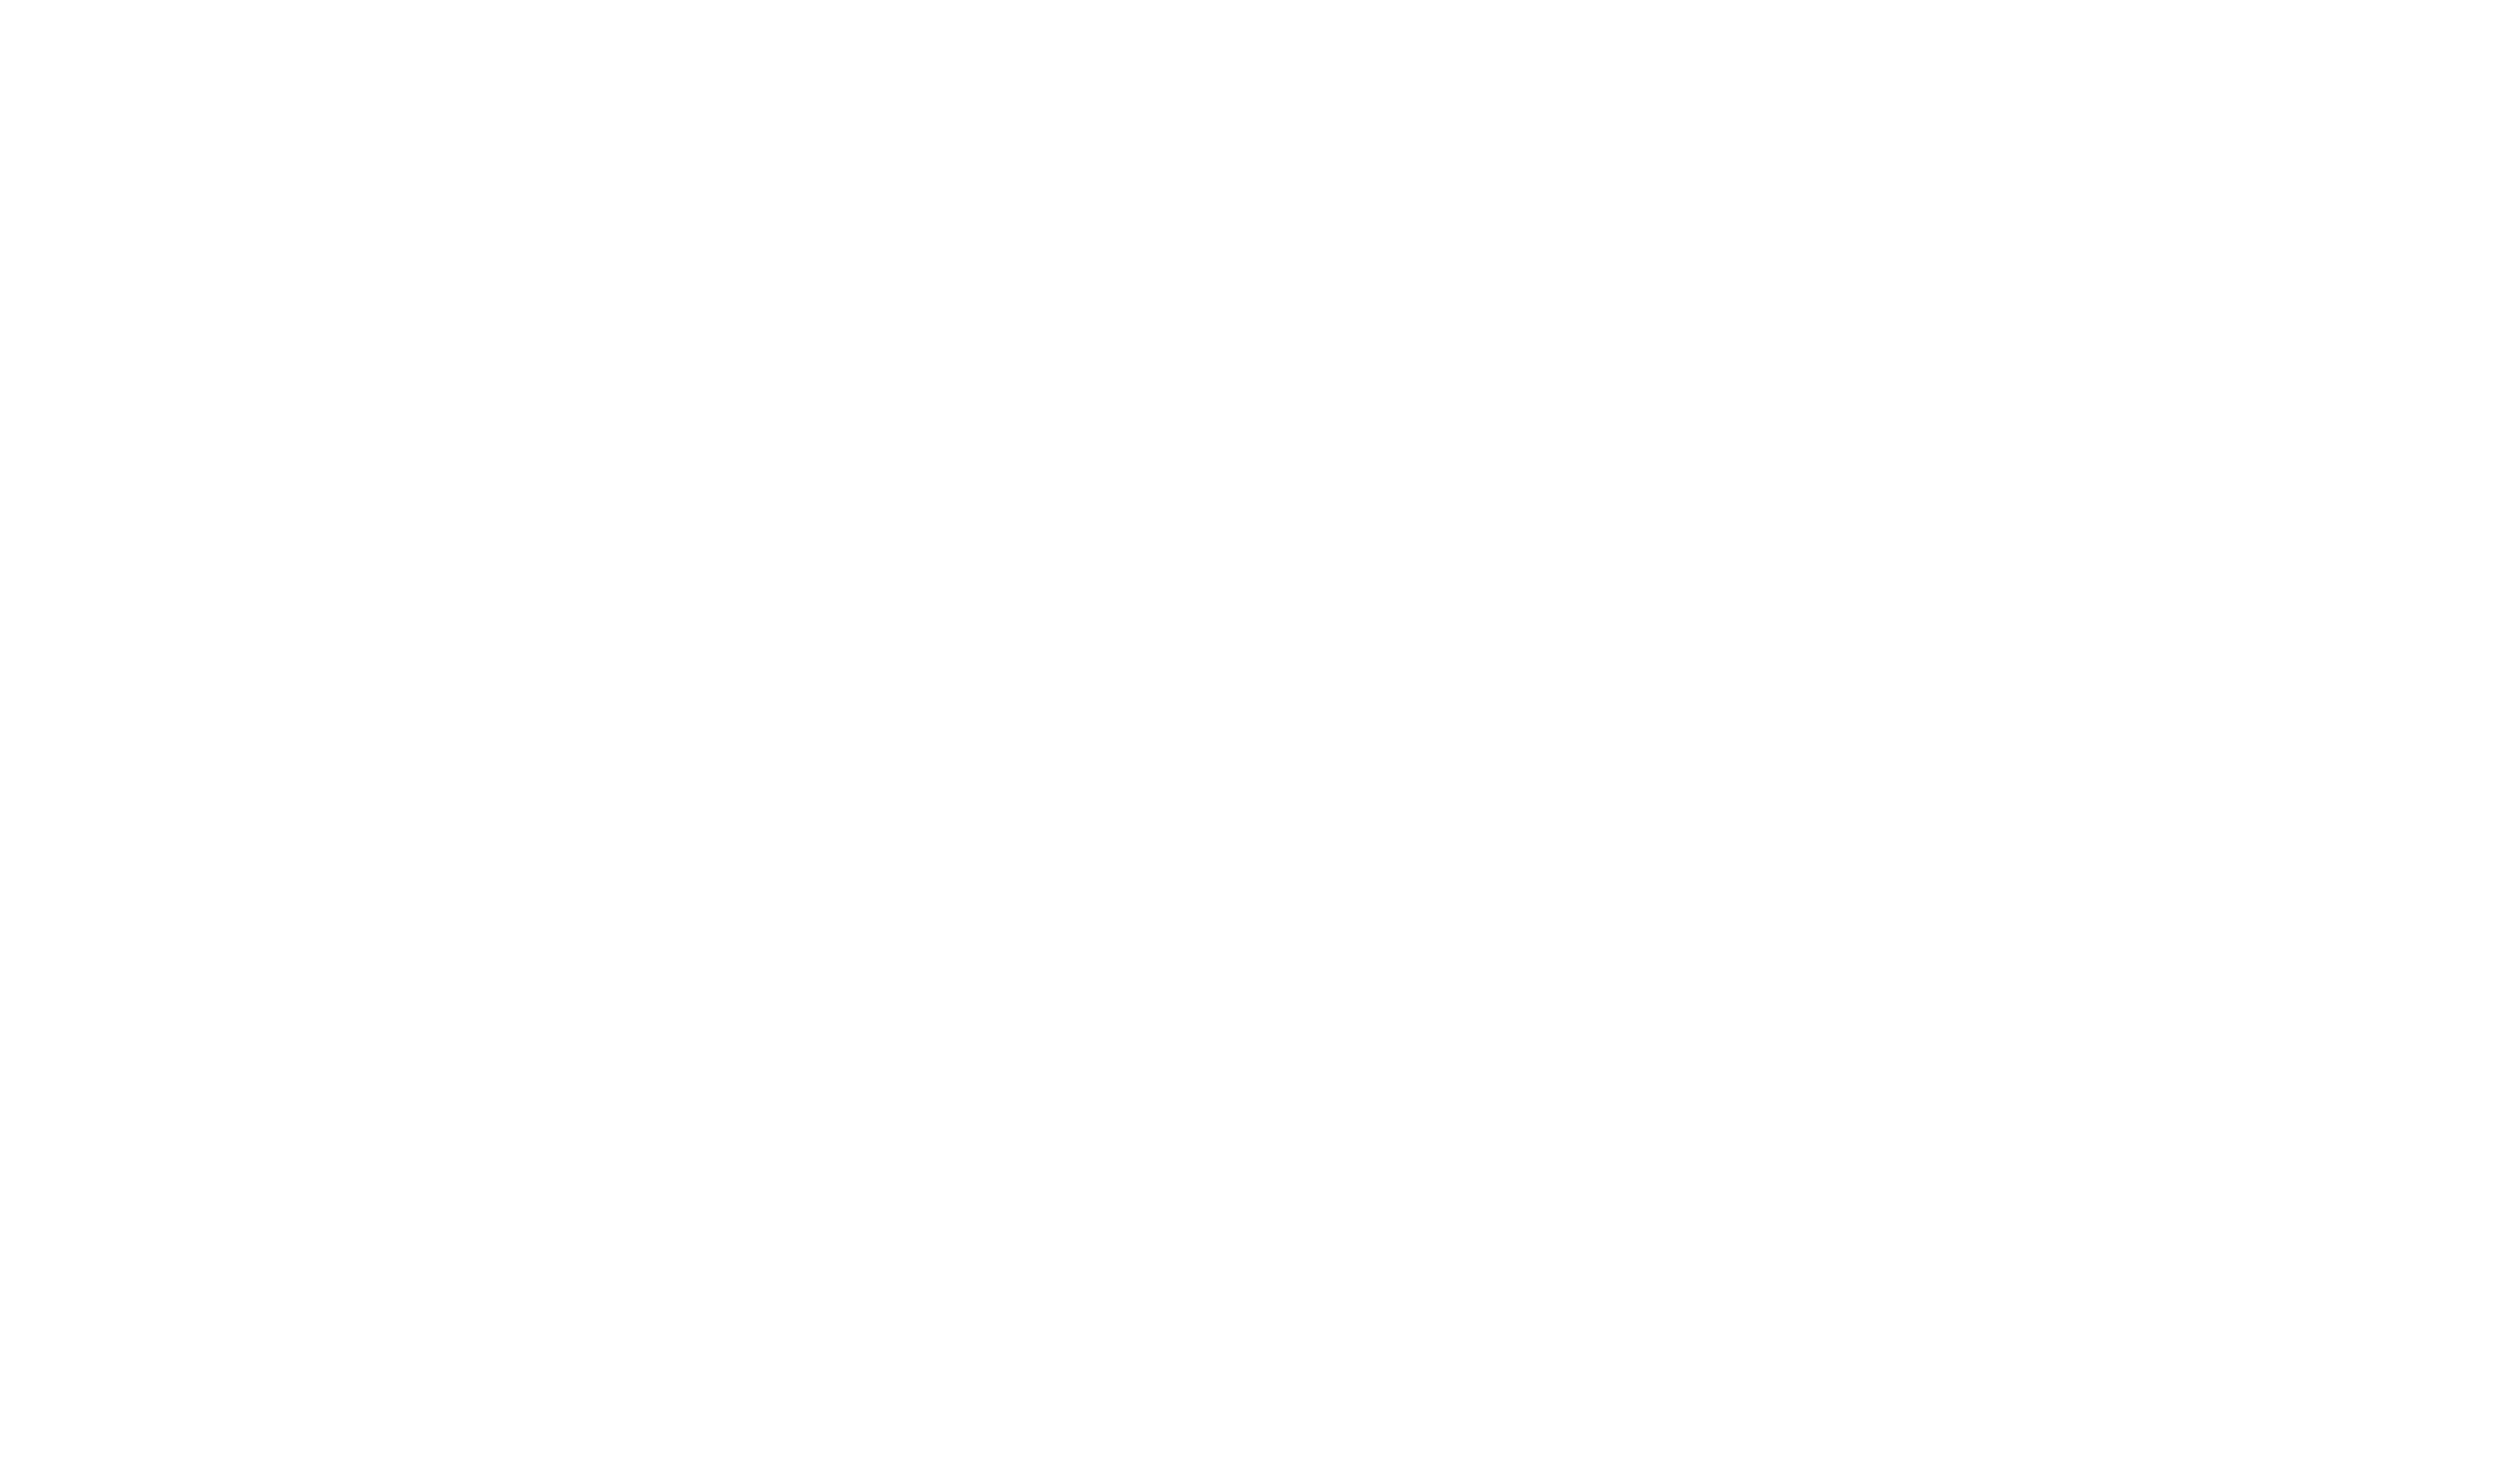 SEWCOUTURE